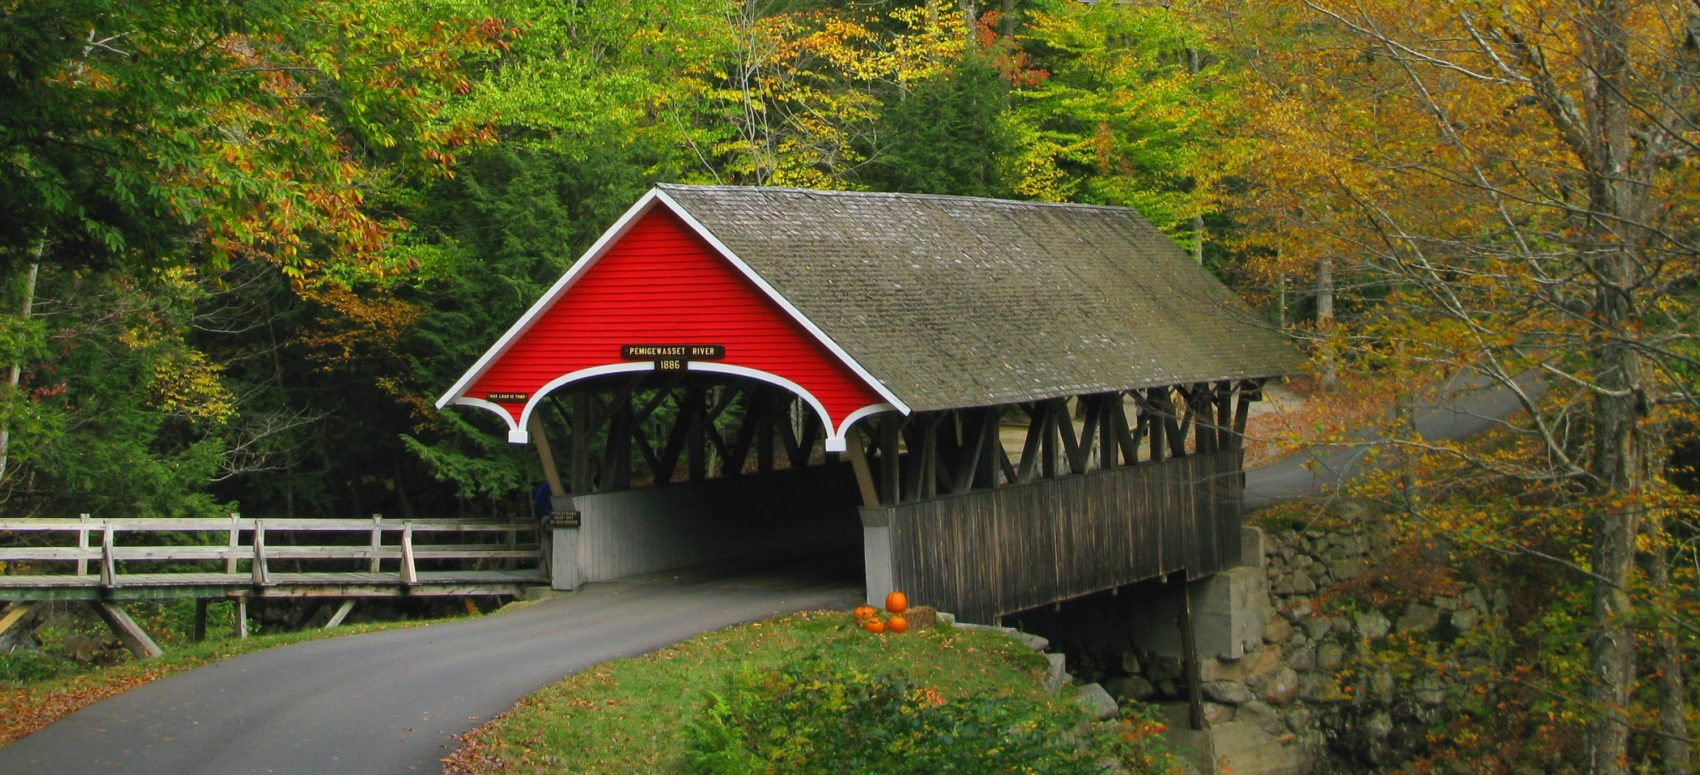 Covered bridge in New England